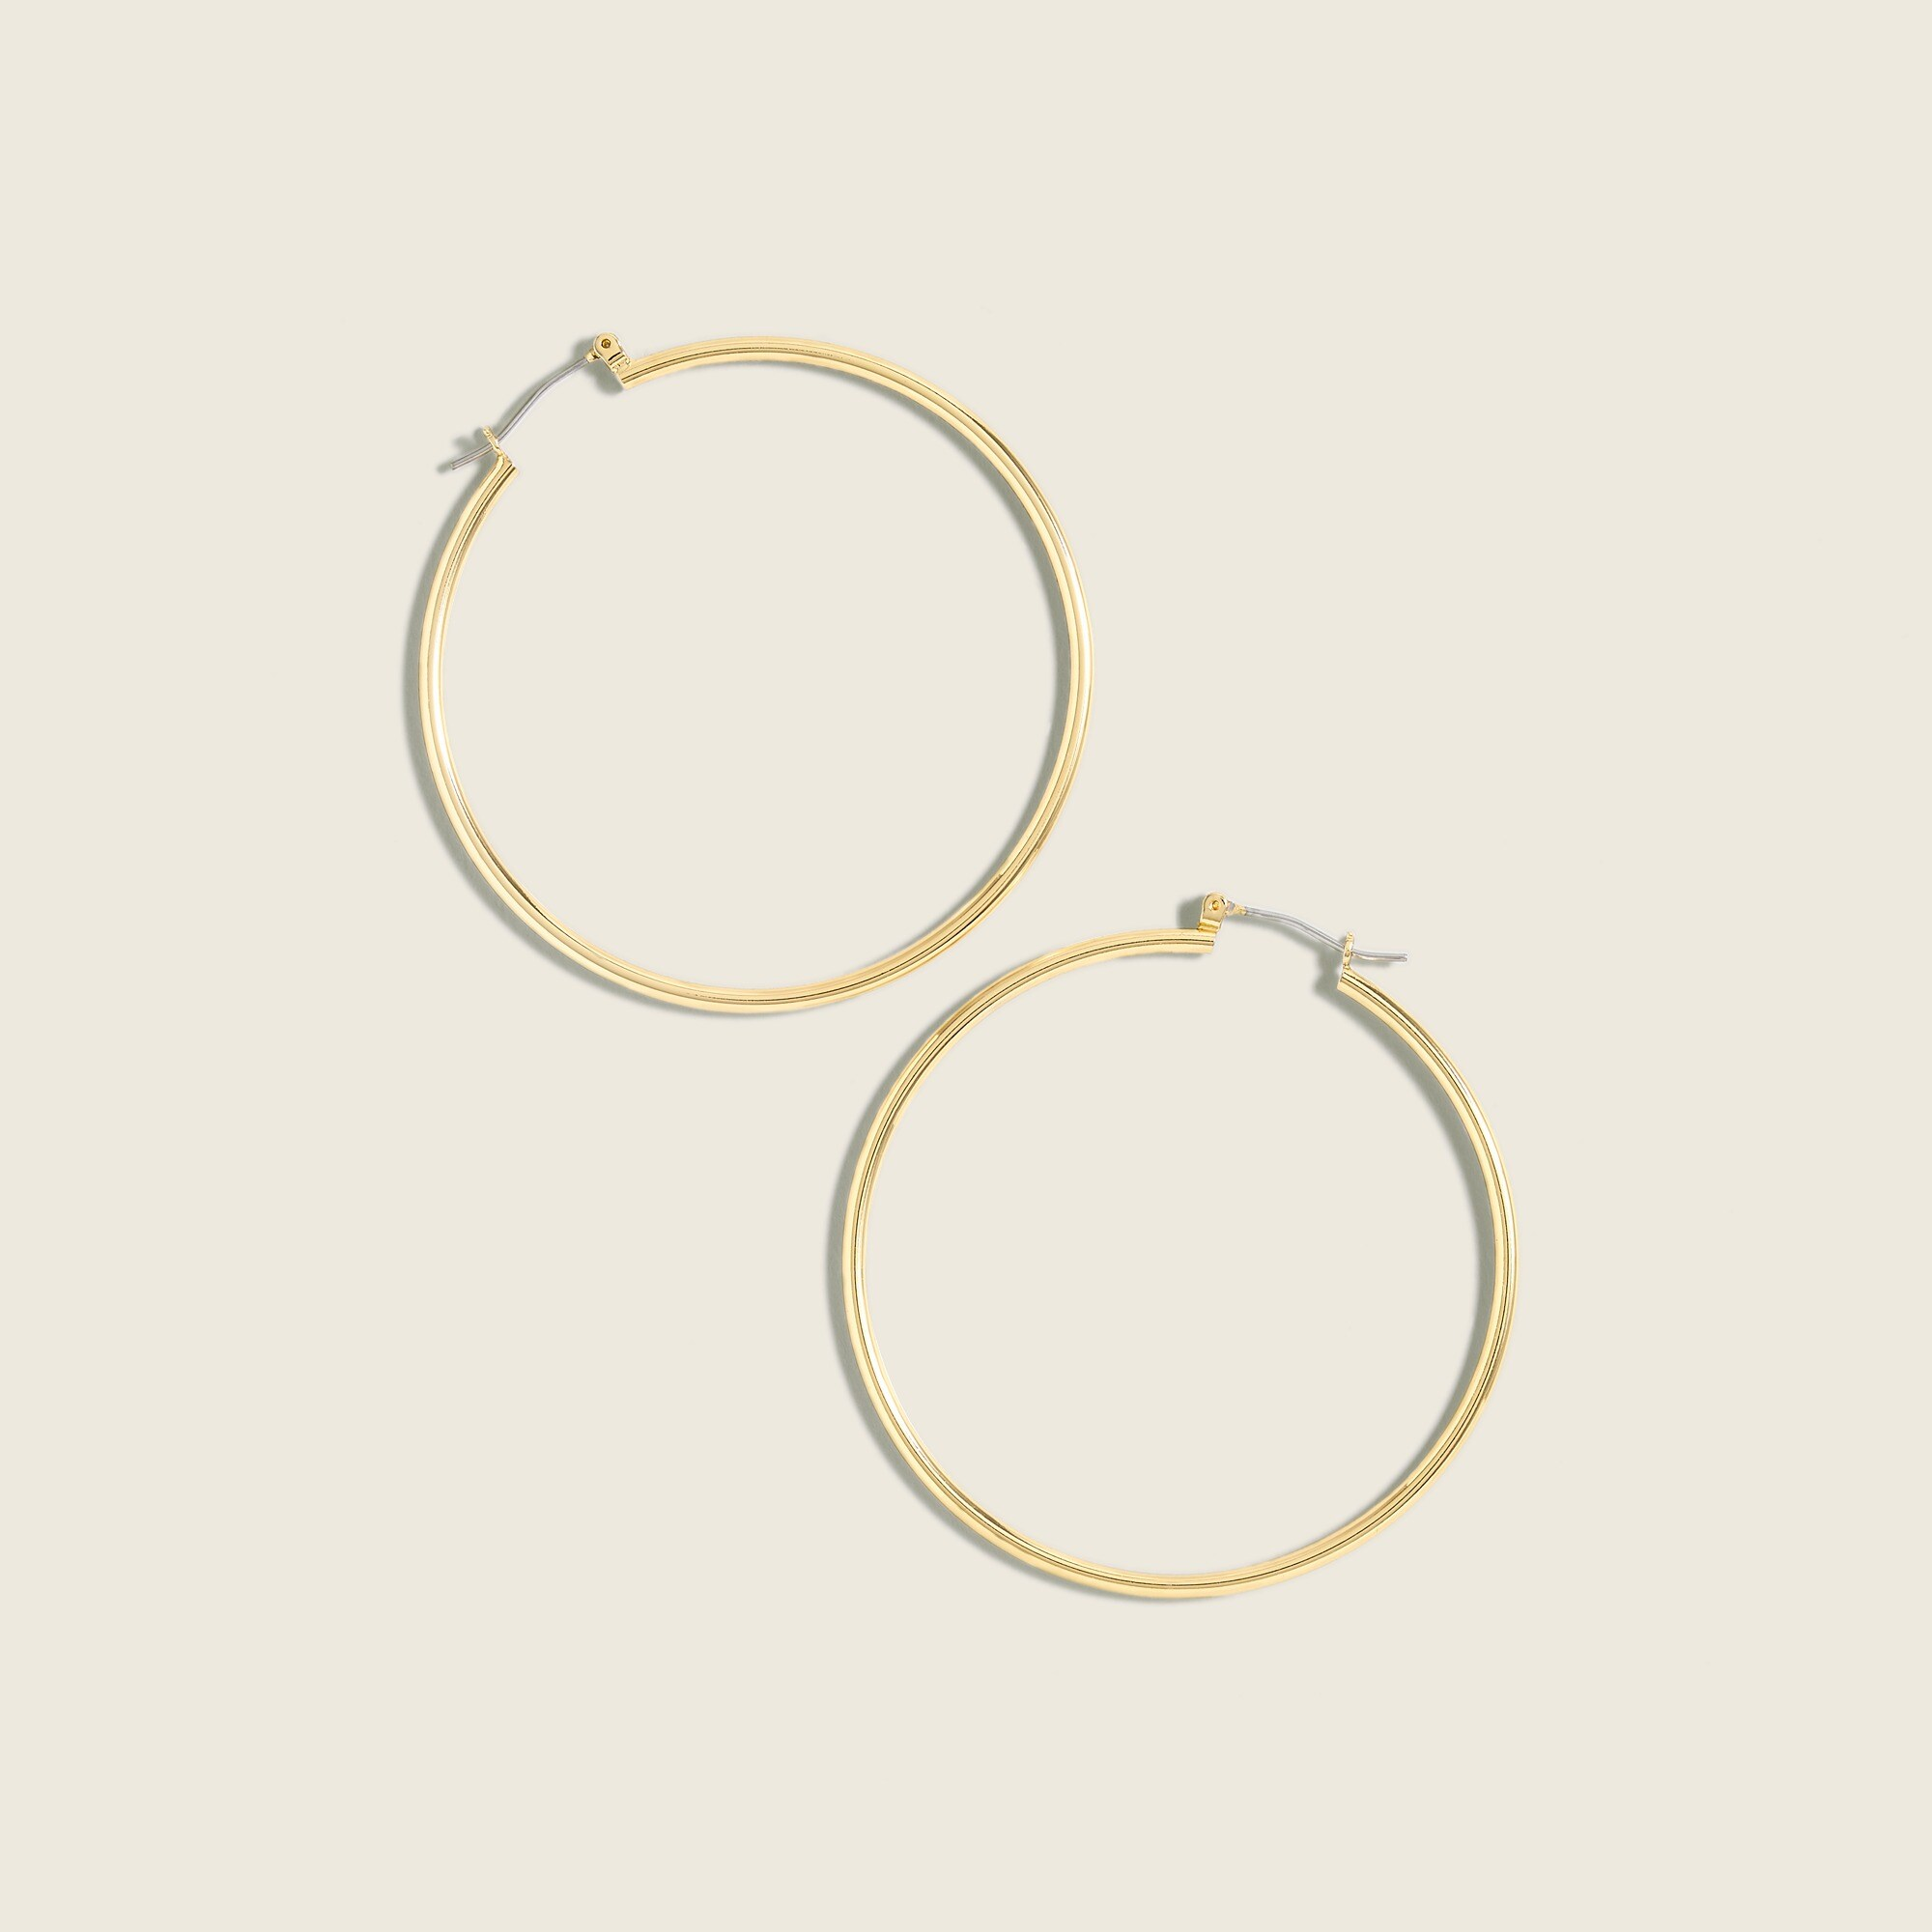 Image 2 for Antique-gold hoop earrings